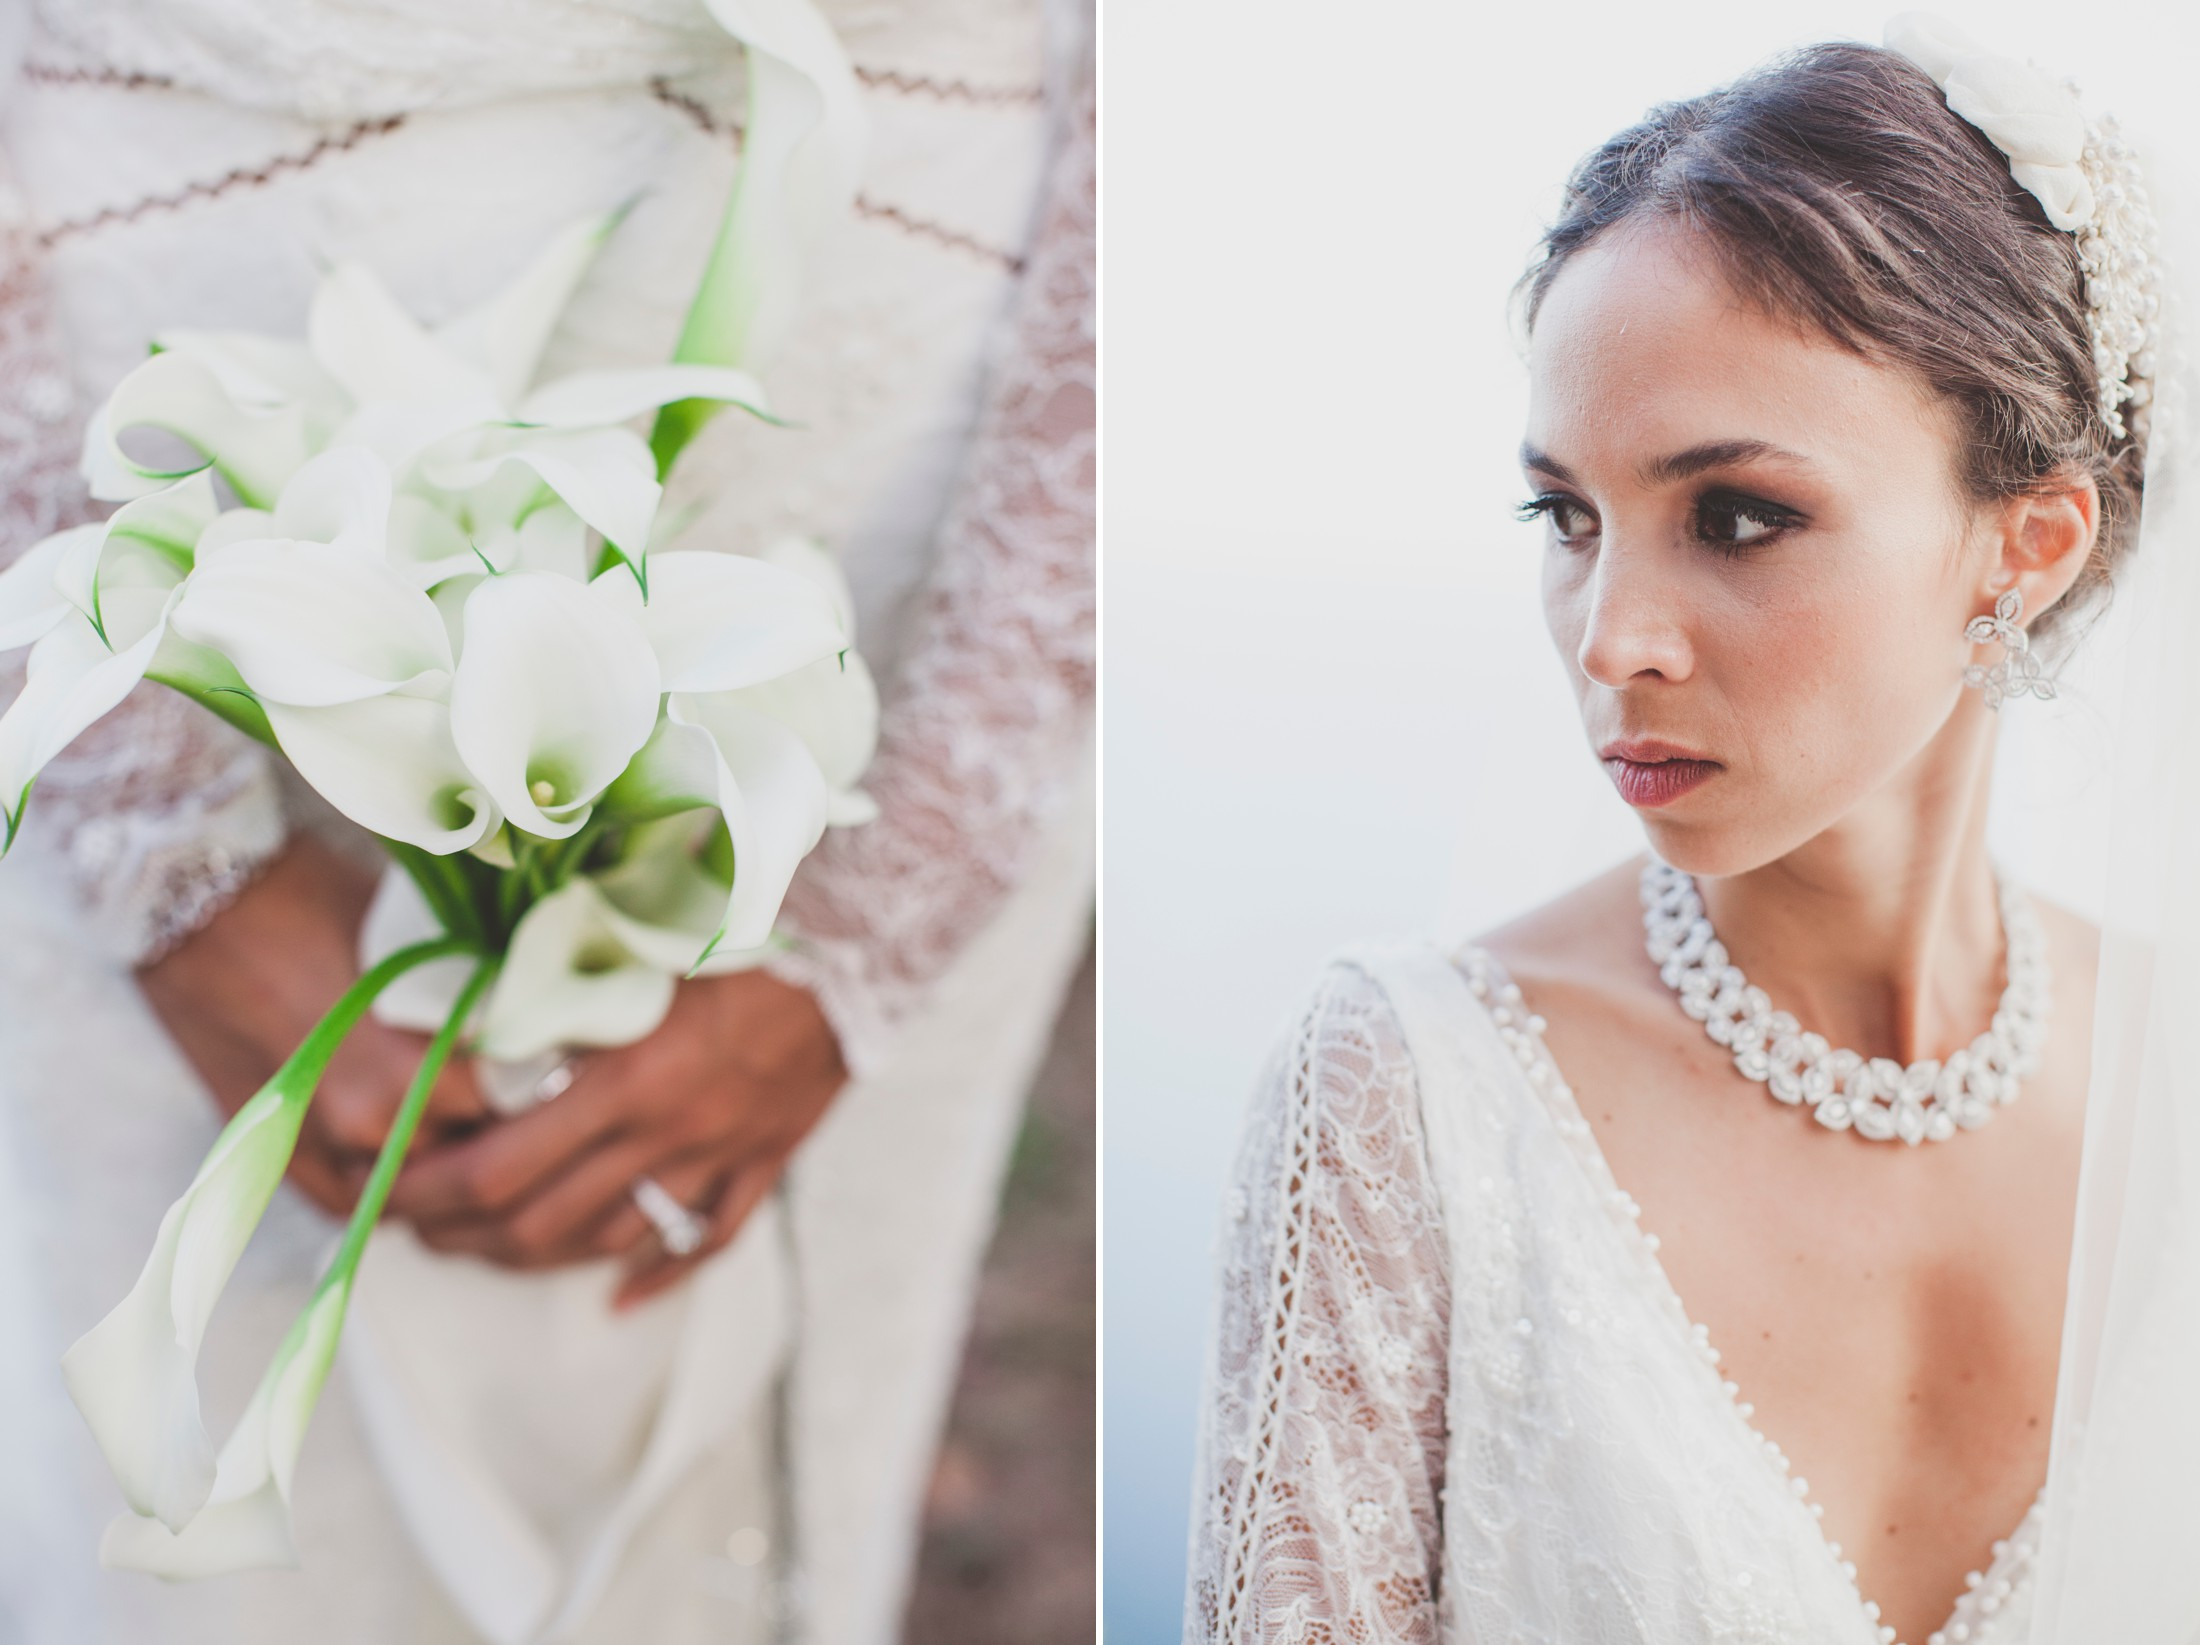 luxury wedding bride's portrait and wedding bouquet made of call lily flowers